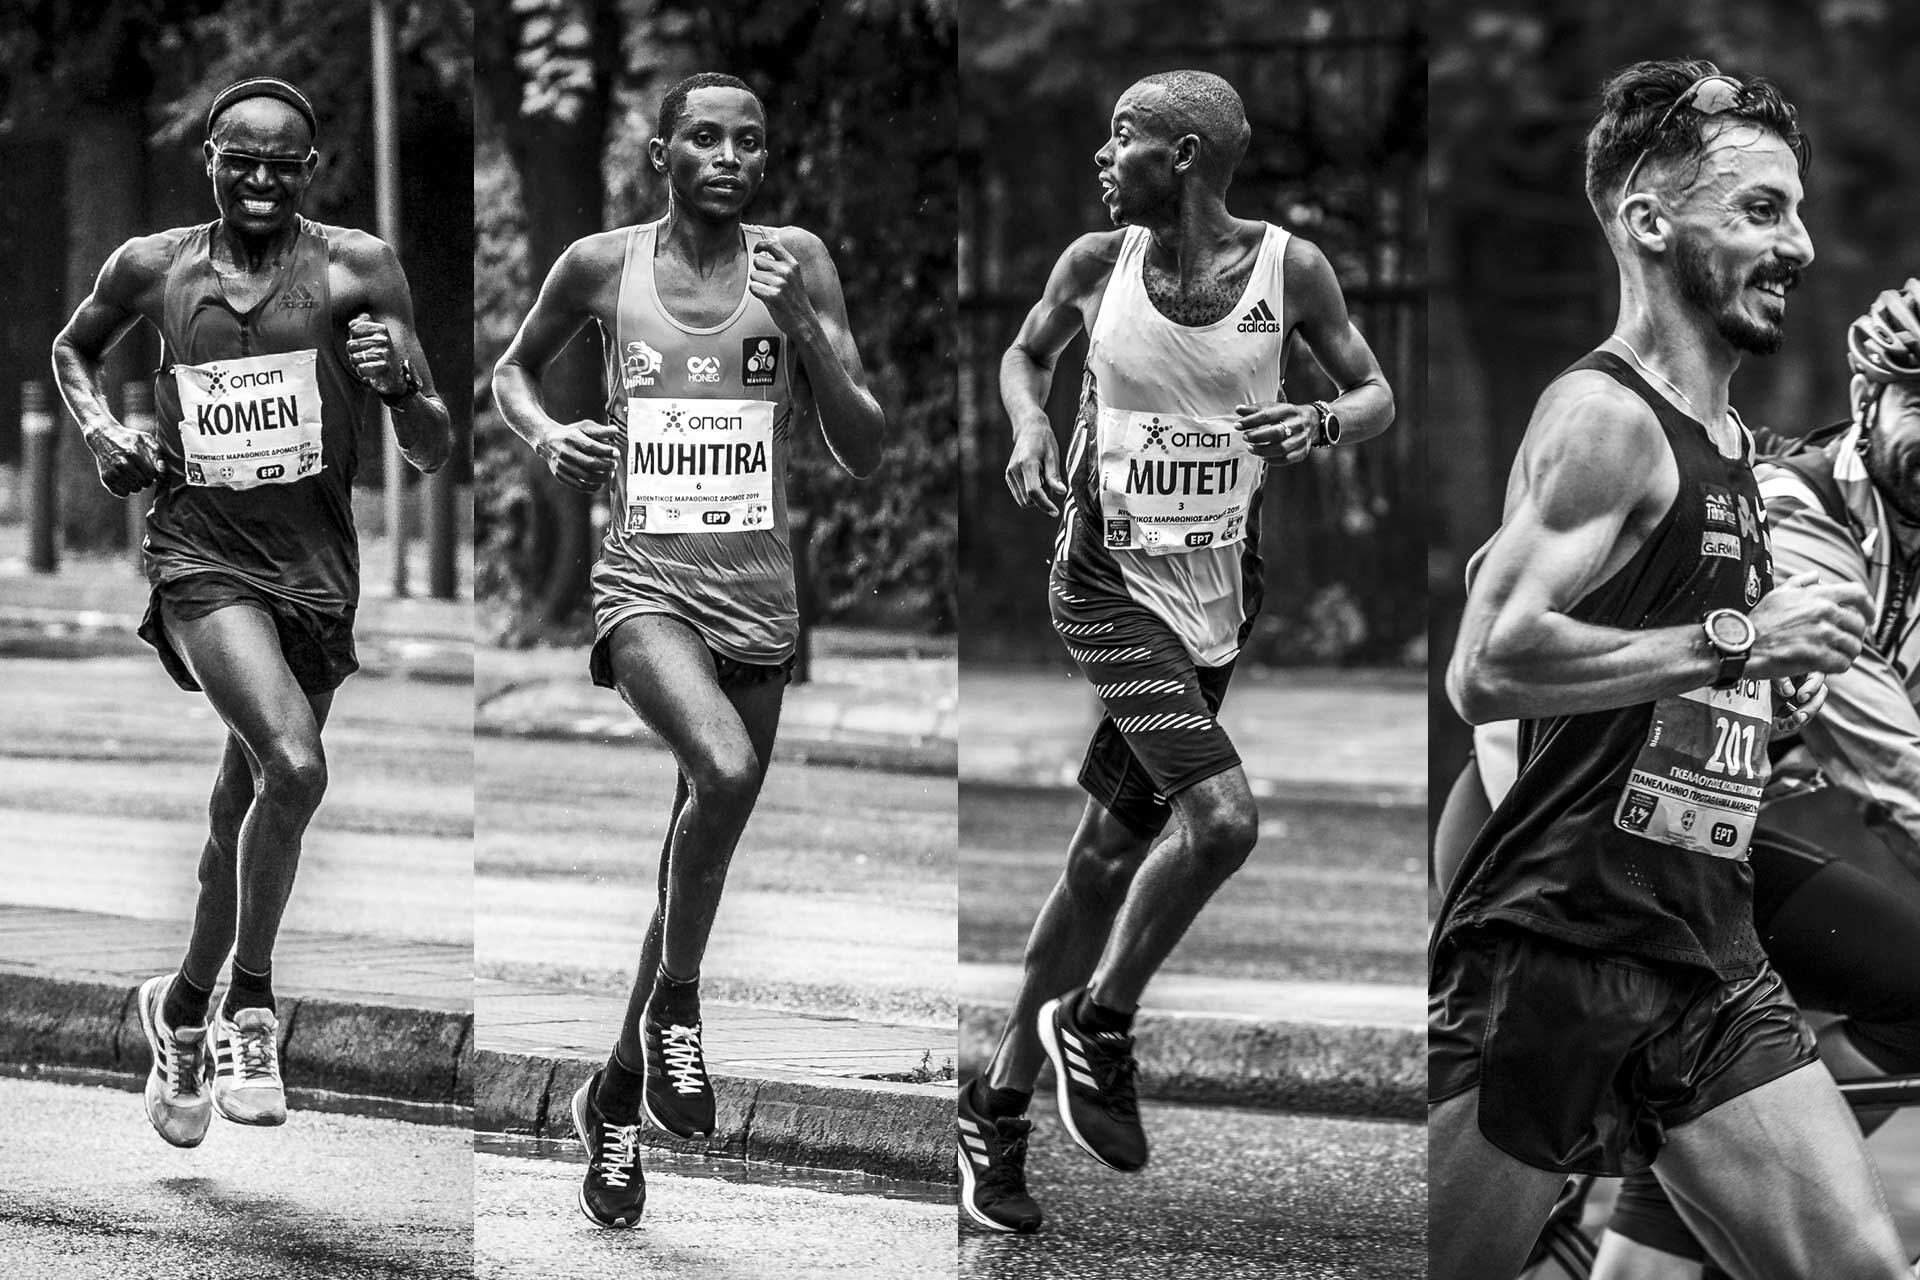 37th Athens Marathon, The Authentic. Photography: © Alexandros Maragos